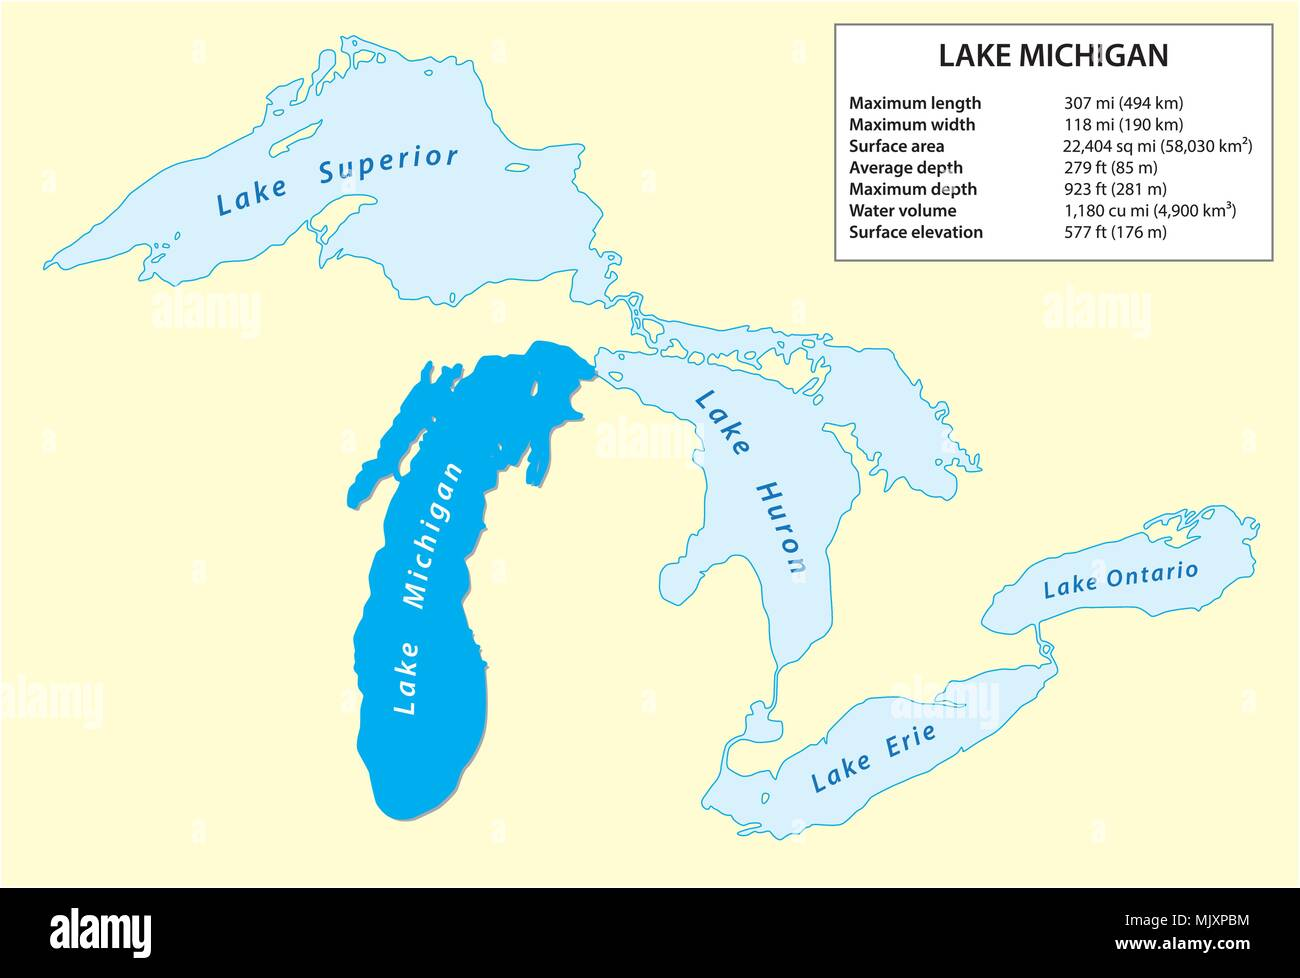 Information Vector Map Of Lake Michigan In North America Stock